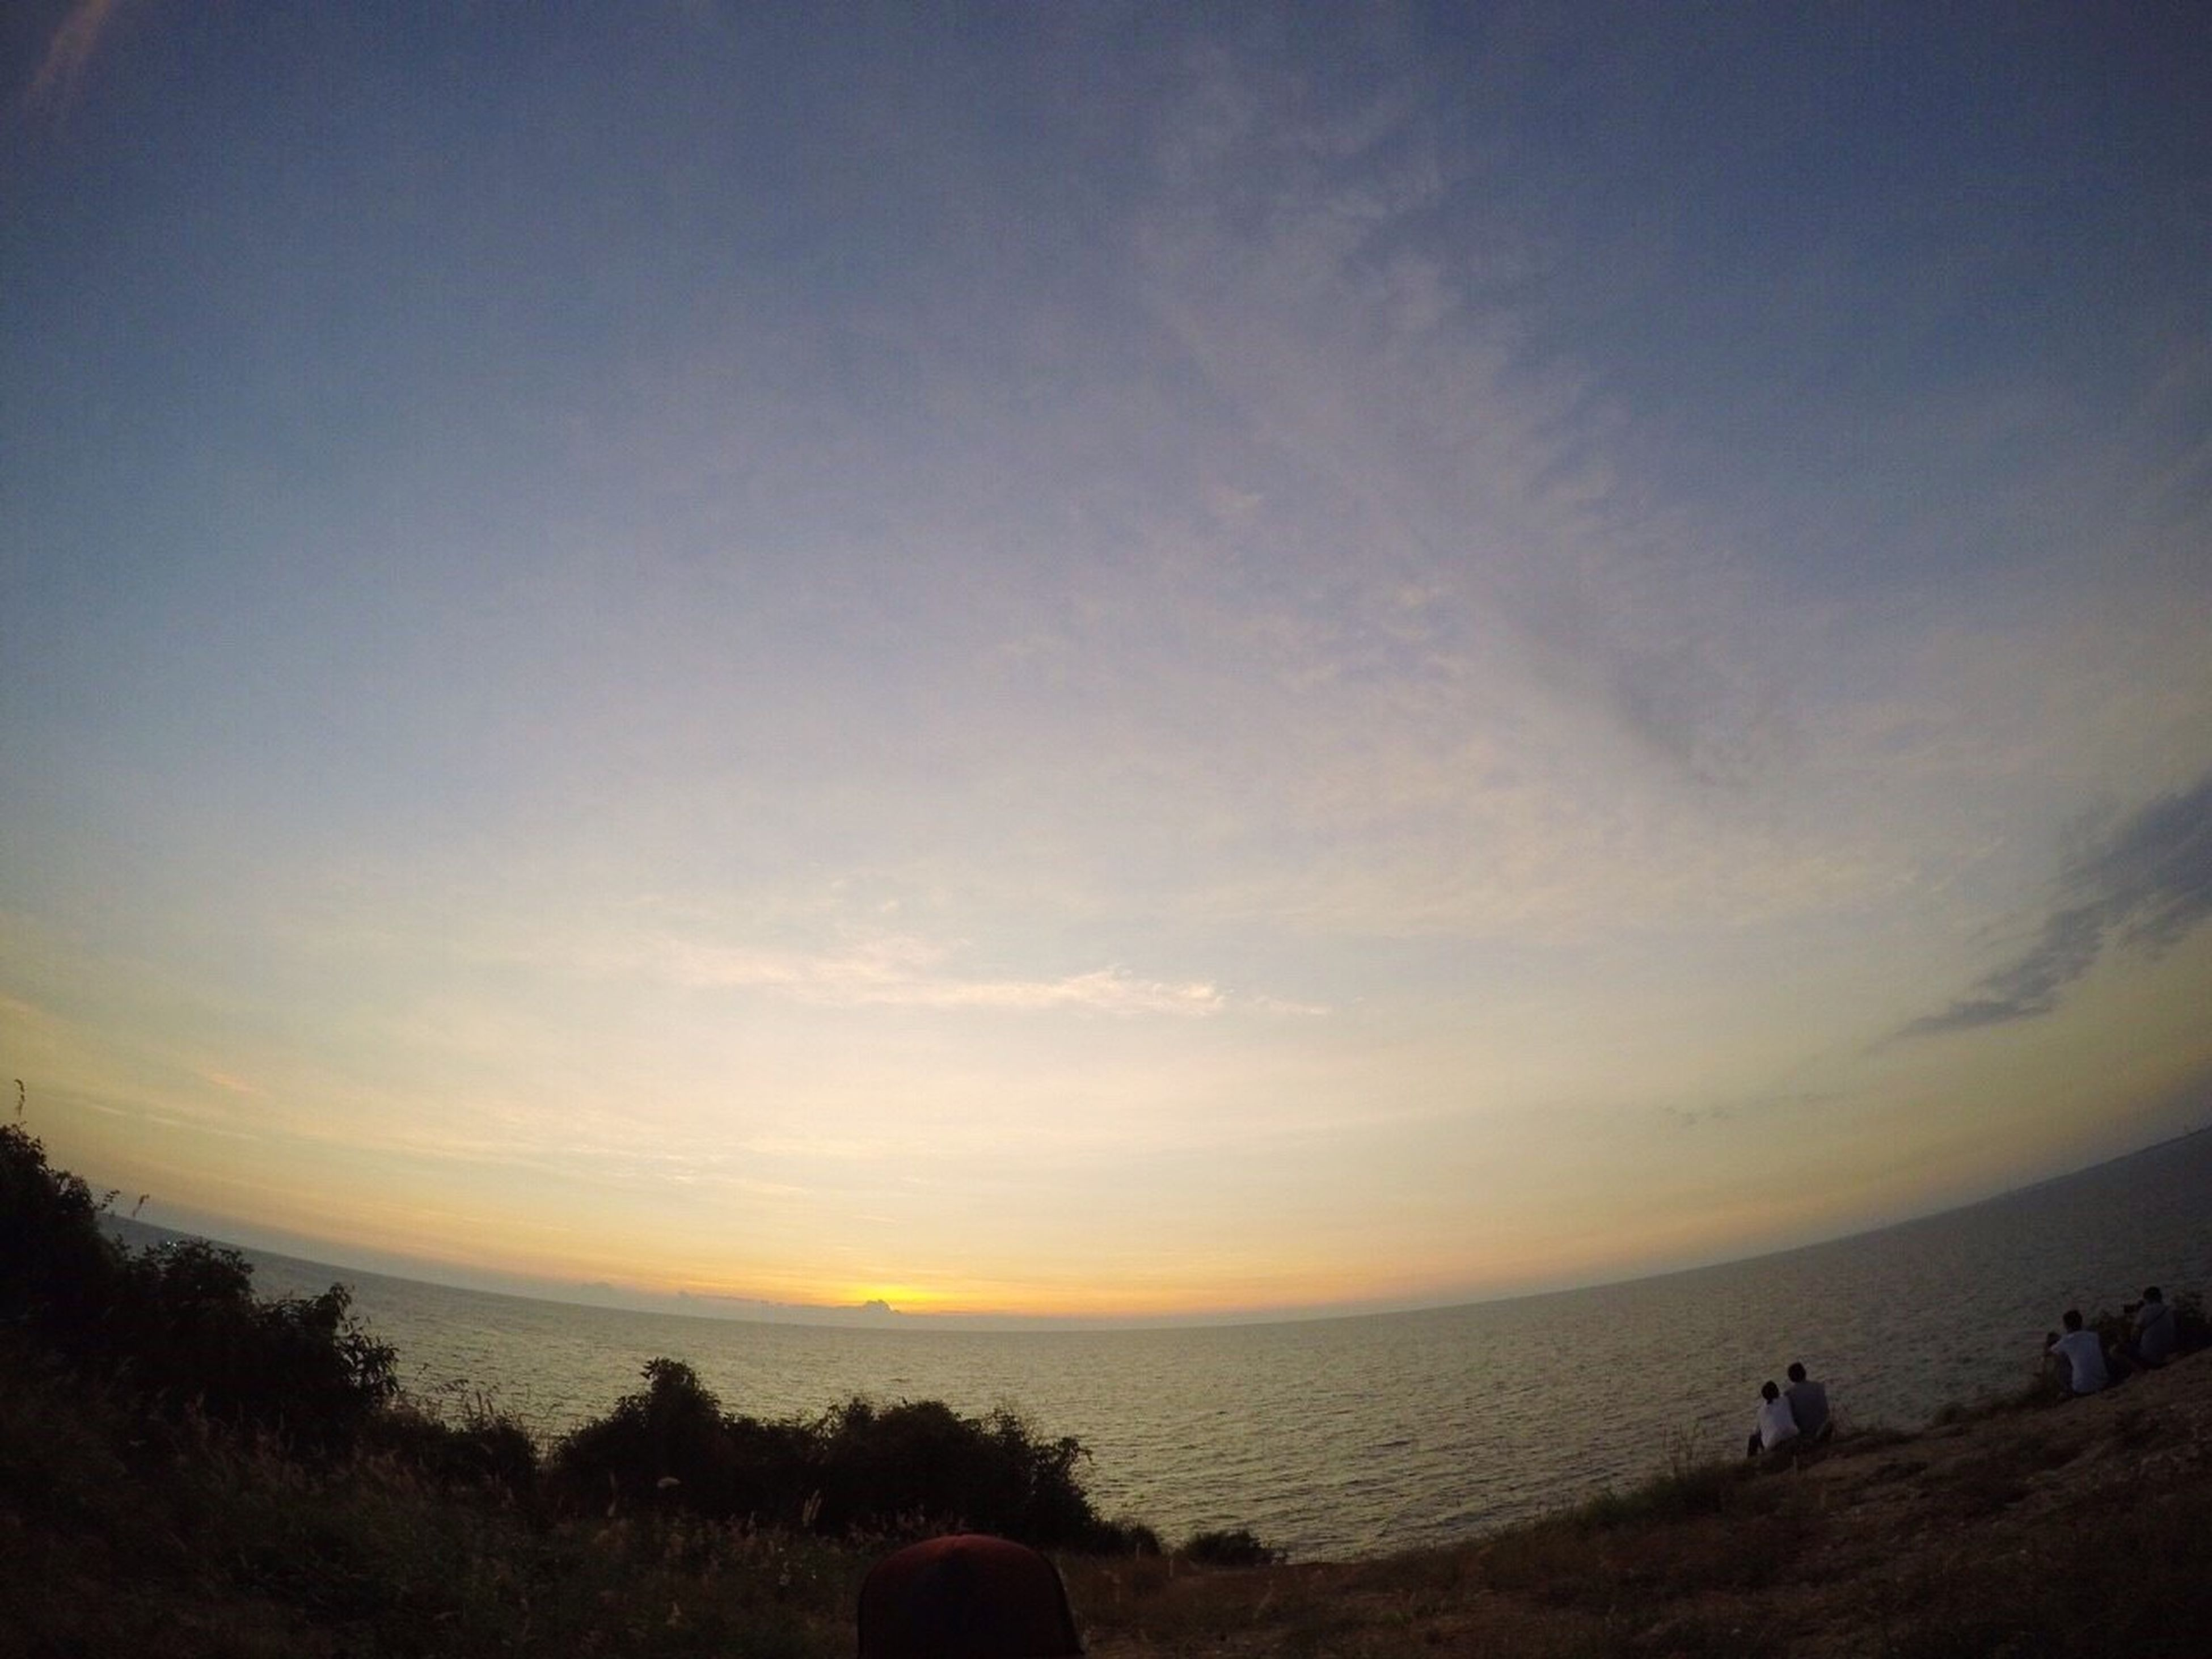 sea, horizon over water, beach, water, scenics, sky, tranquil scene, beauty in nature, tranquility, sunset, shore, nature, idyllic, silhouette, vacations, leisure activity, cloud - sky, lifestyles, outdoors